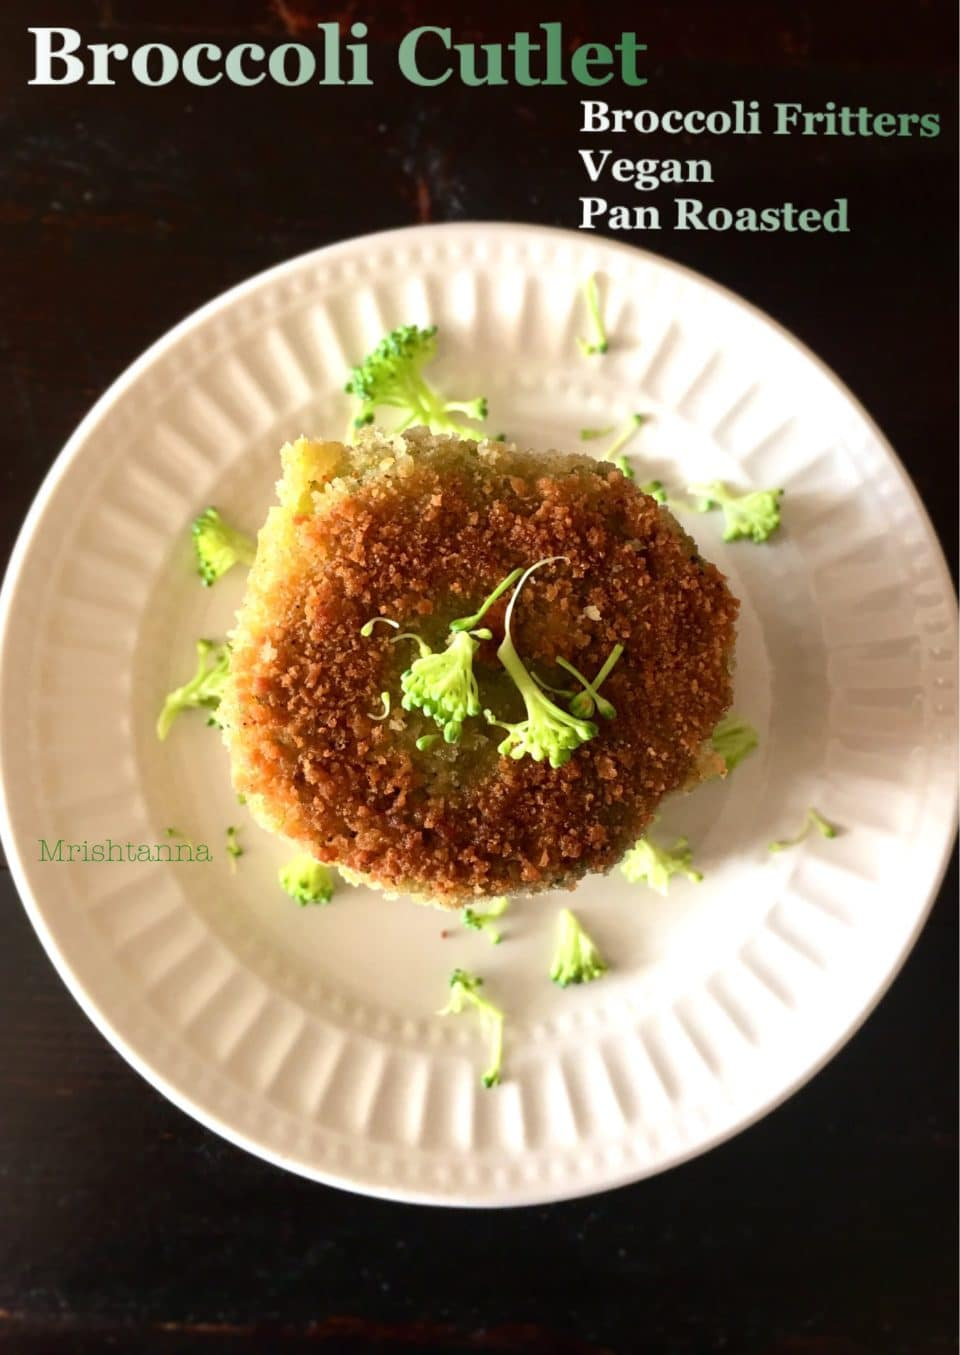 Broccoli Recipe Kids Will Love - Broccoli Cutlets